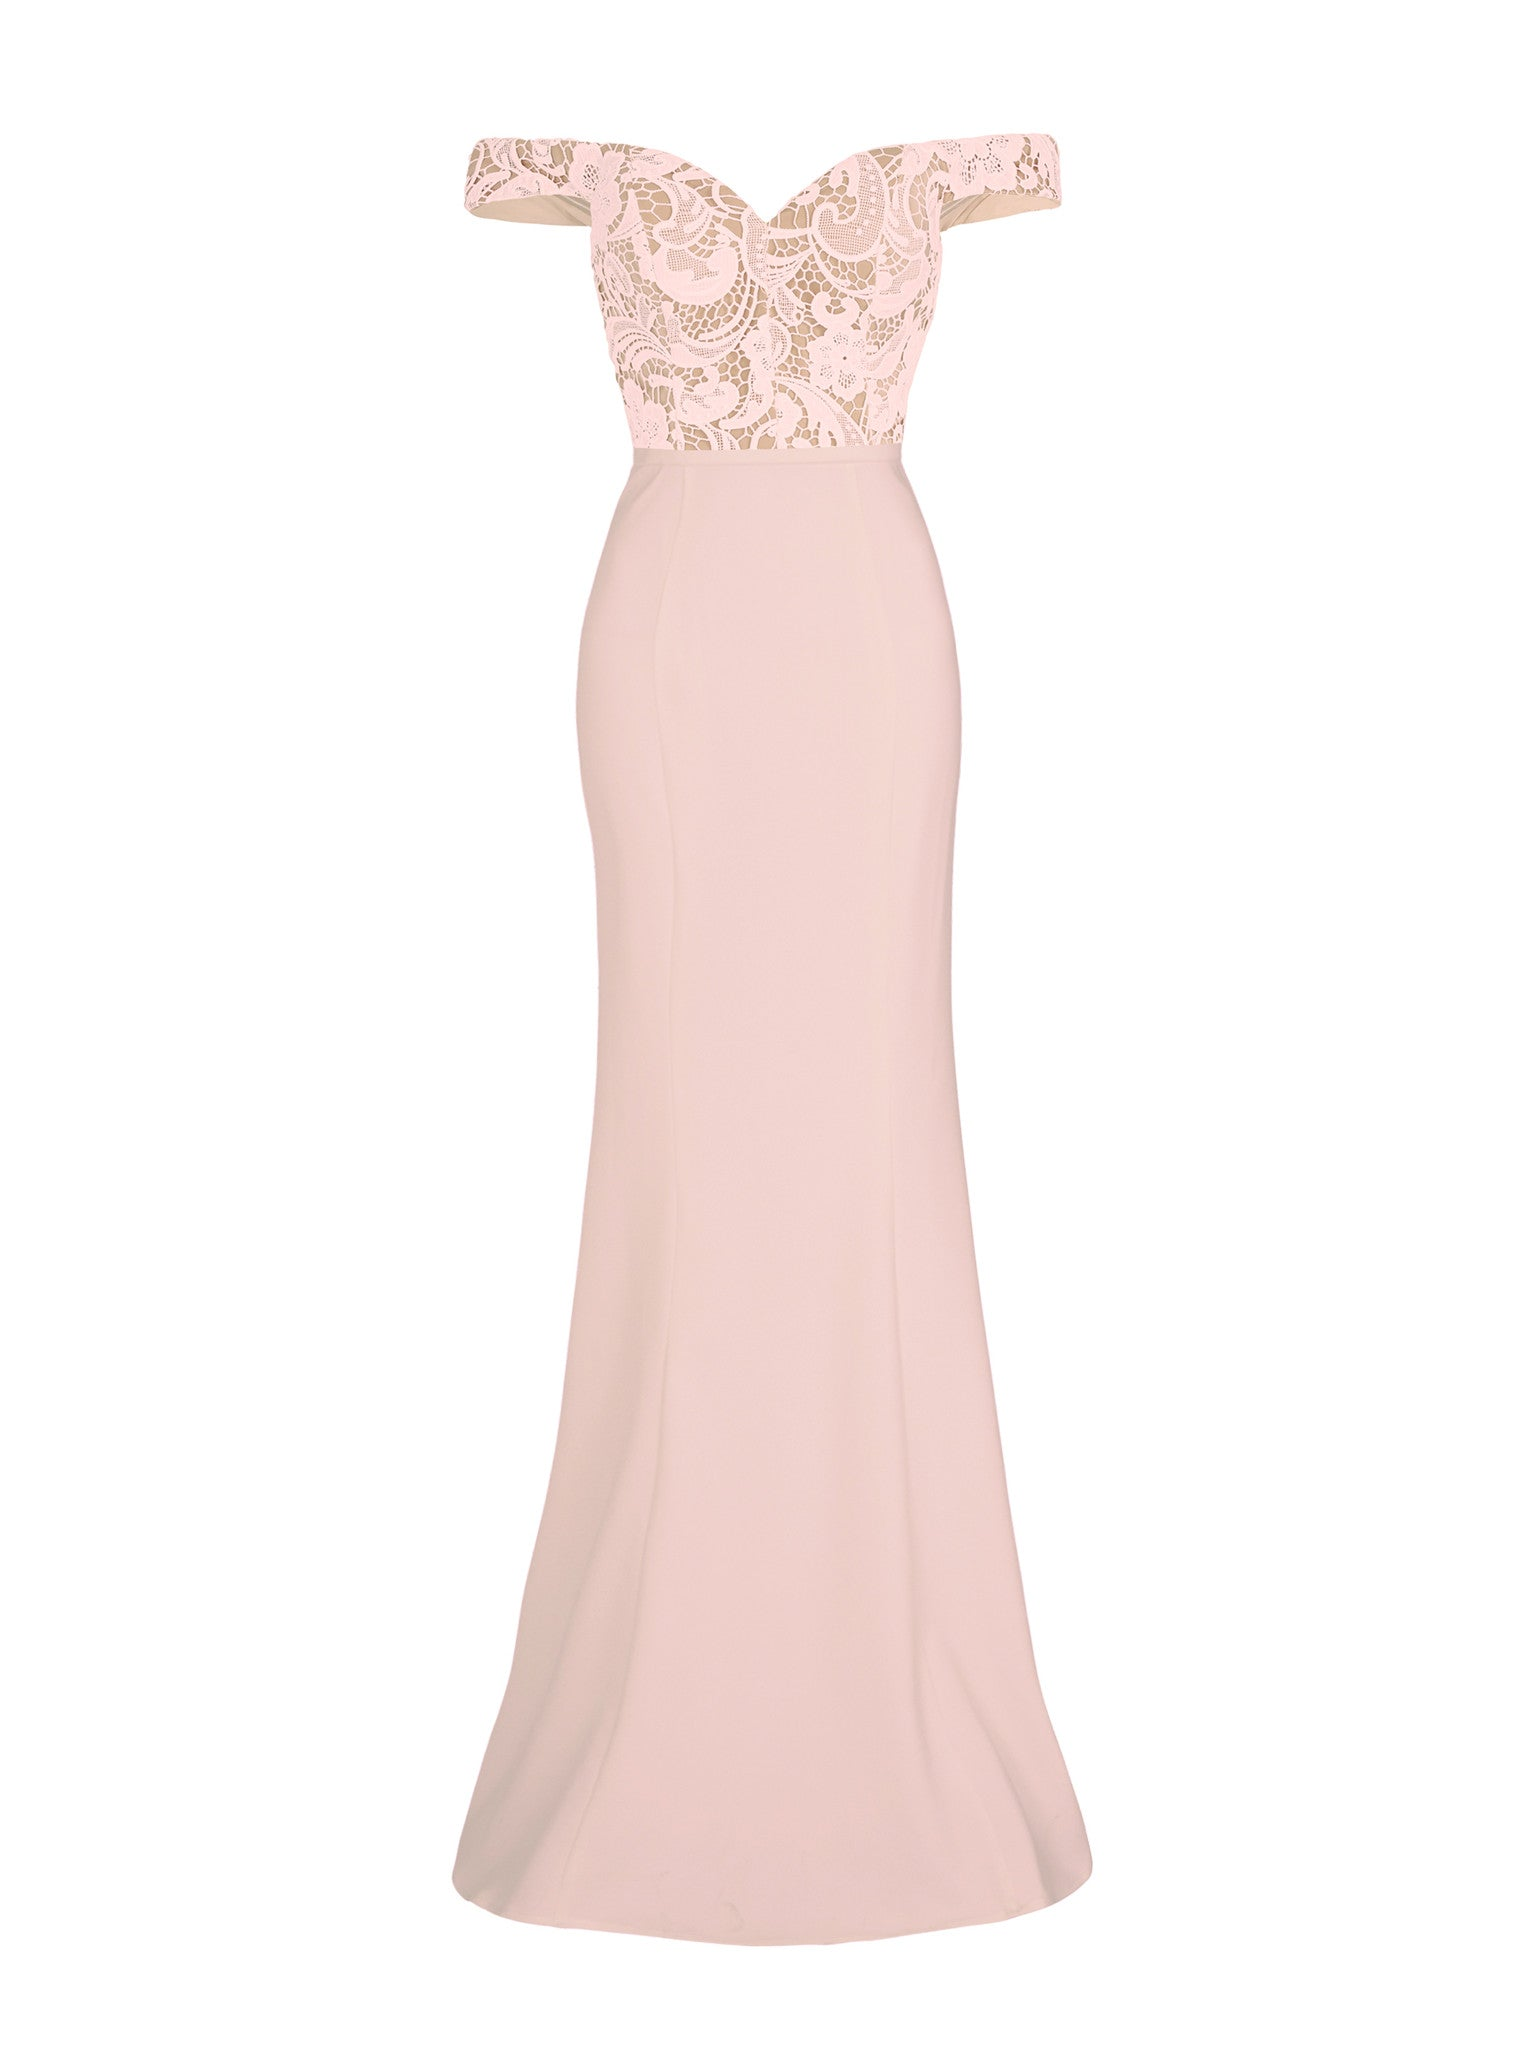 ELANA GOWN - DUSTY PINK